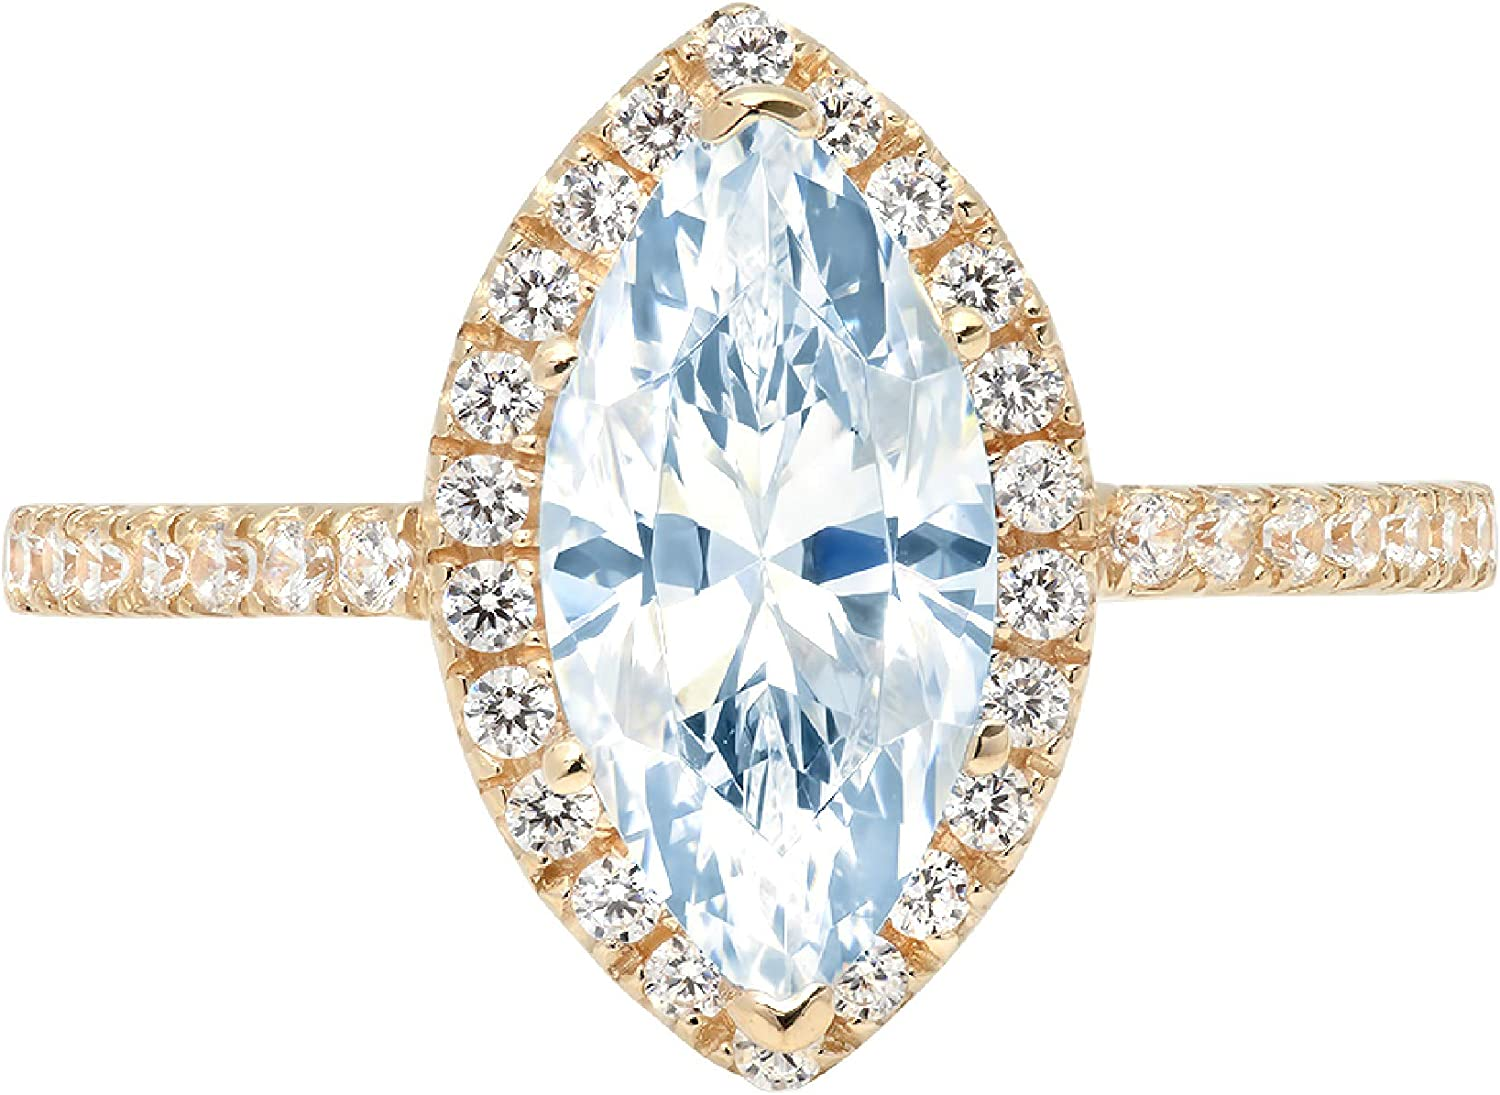 2.32ct Brilliant Marquise Cut Solitaire with Accent Halo Natural Sky Blue Topaz Gem Stone Ideal VVS1 Engagement Promise Statement Anniversary Bridal Wedding ring 14k Yellow Gold